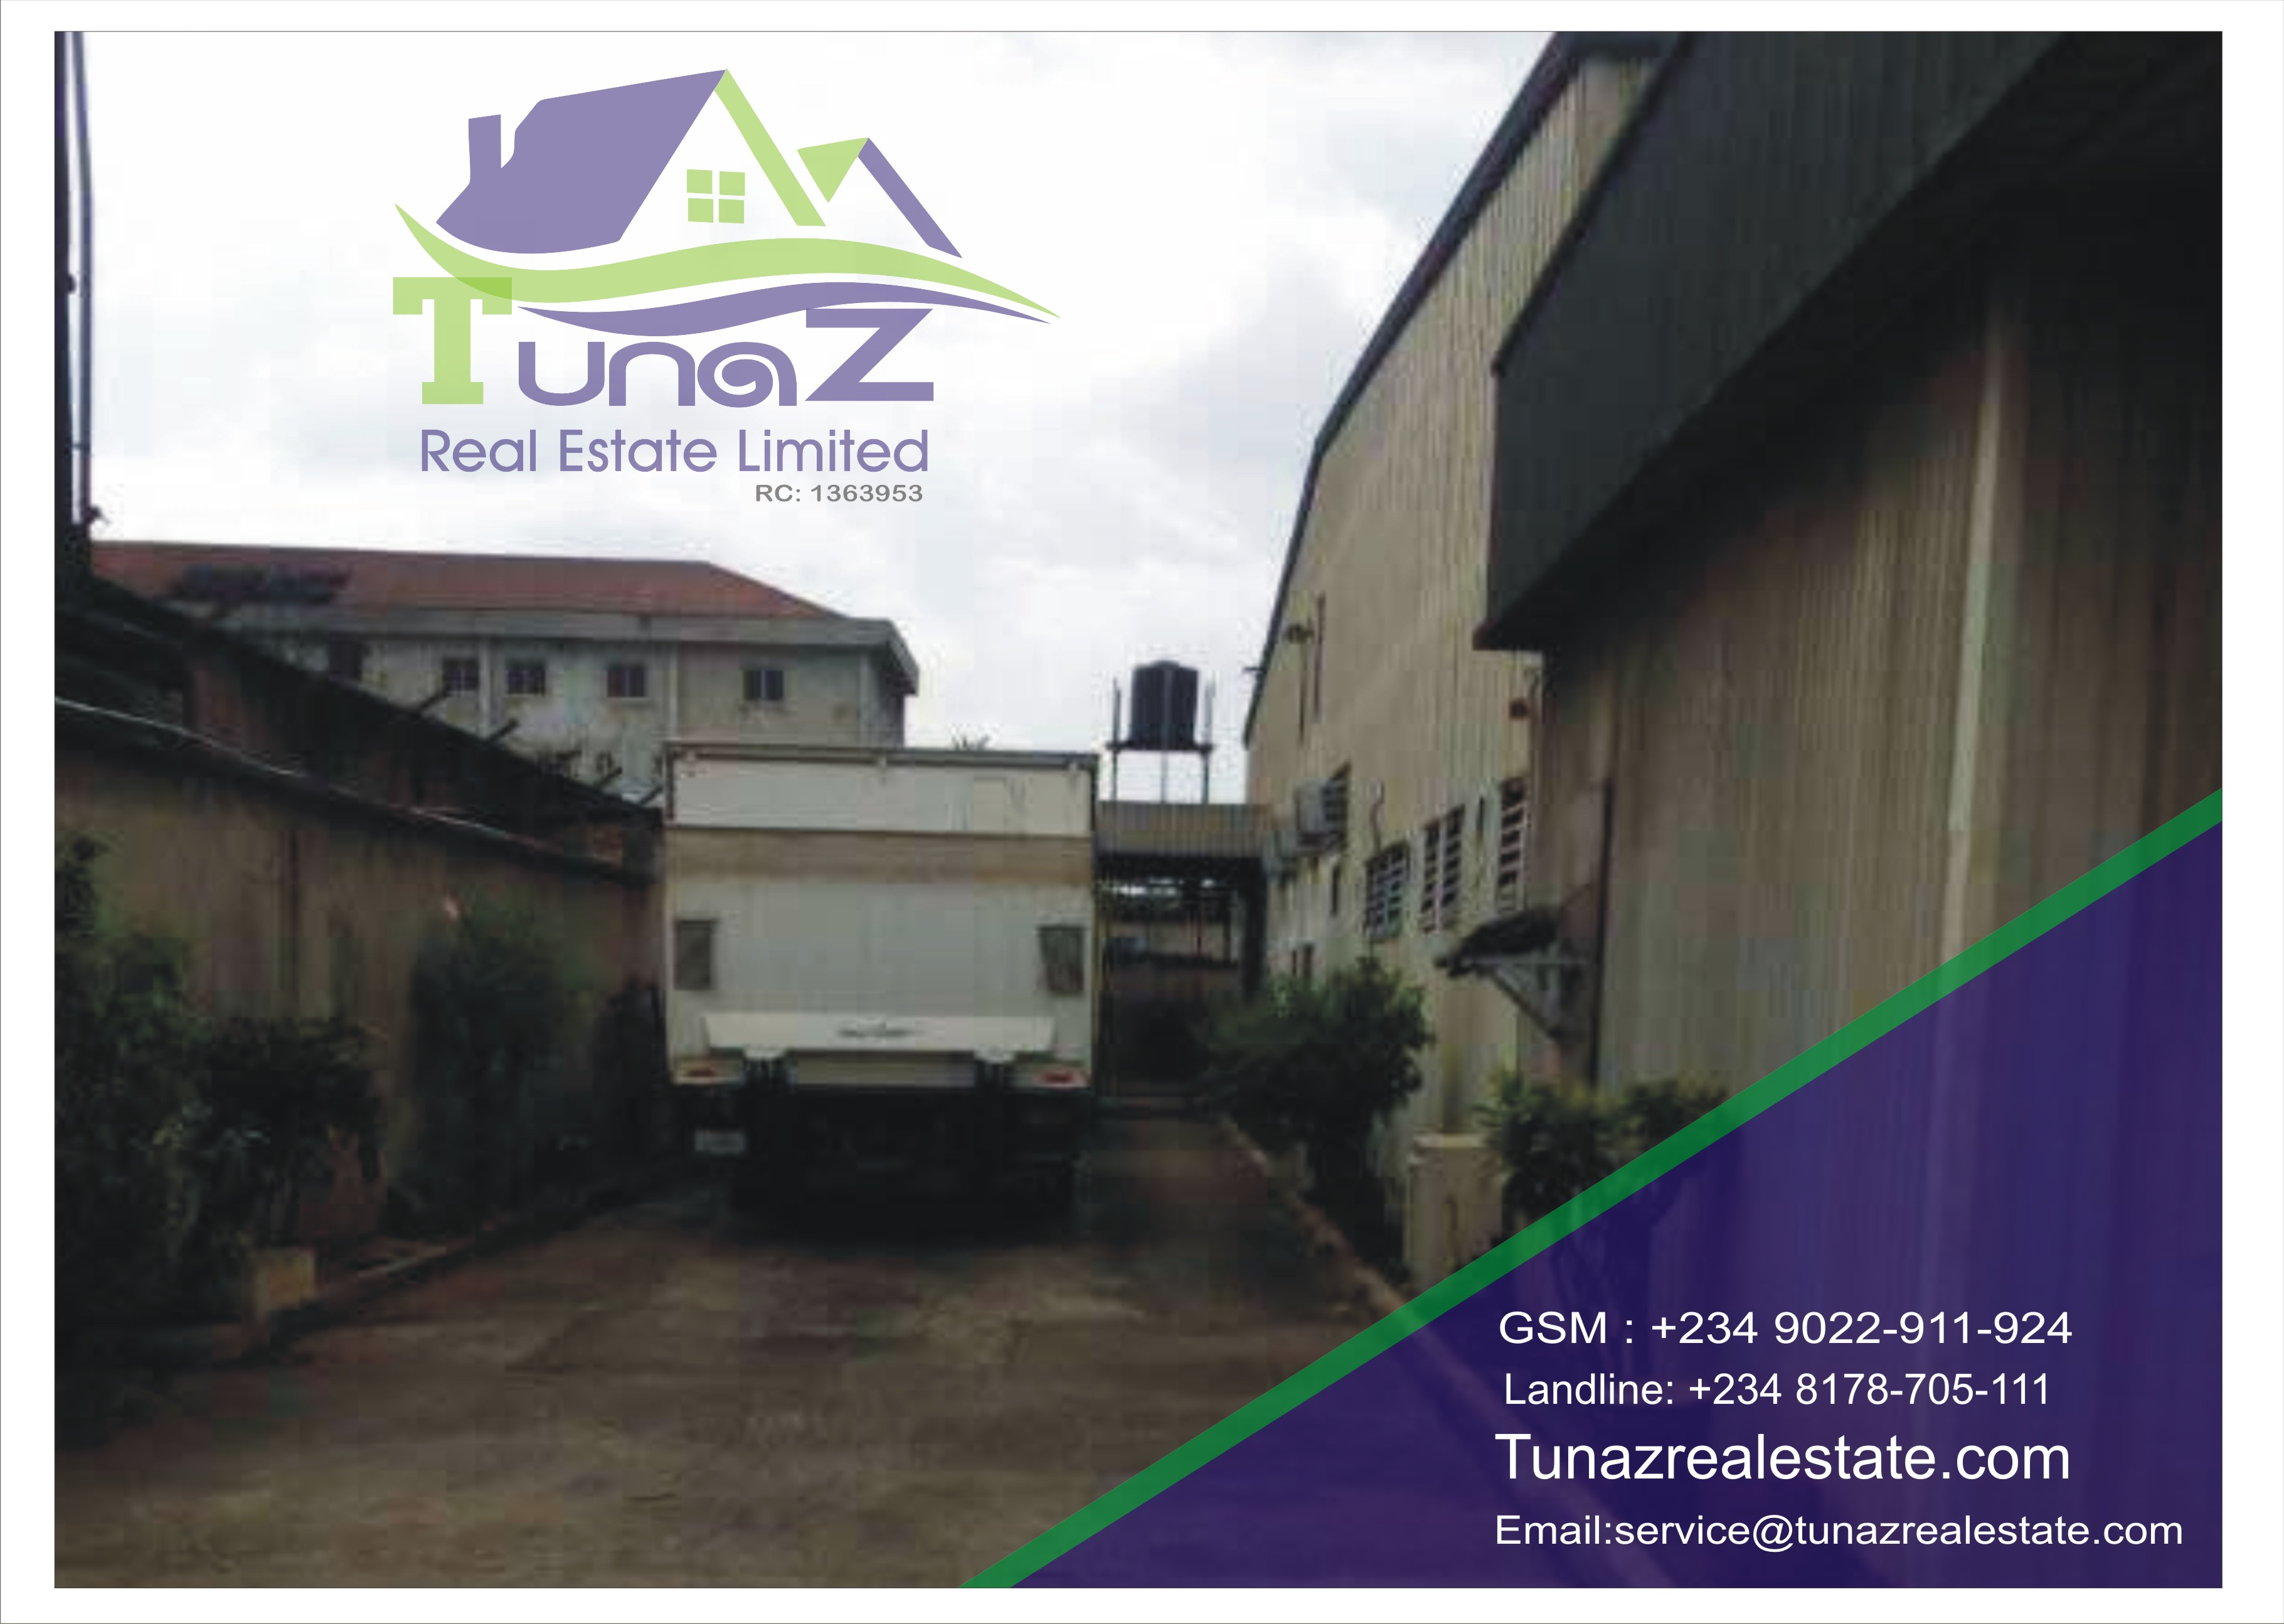 Existing Lace Production Factory + All The Machineries Functional On Over 1 Acre Of Land for Sale